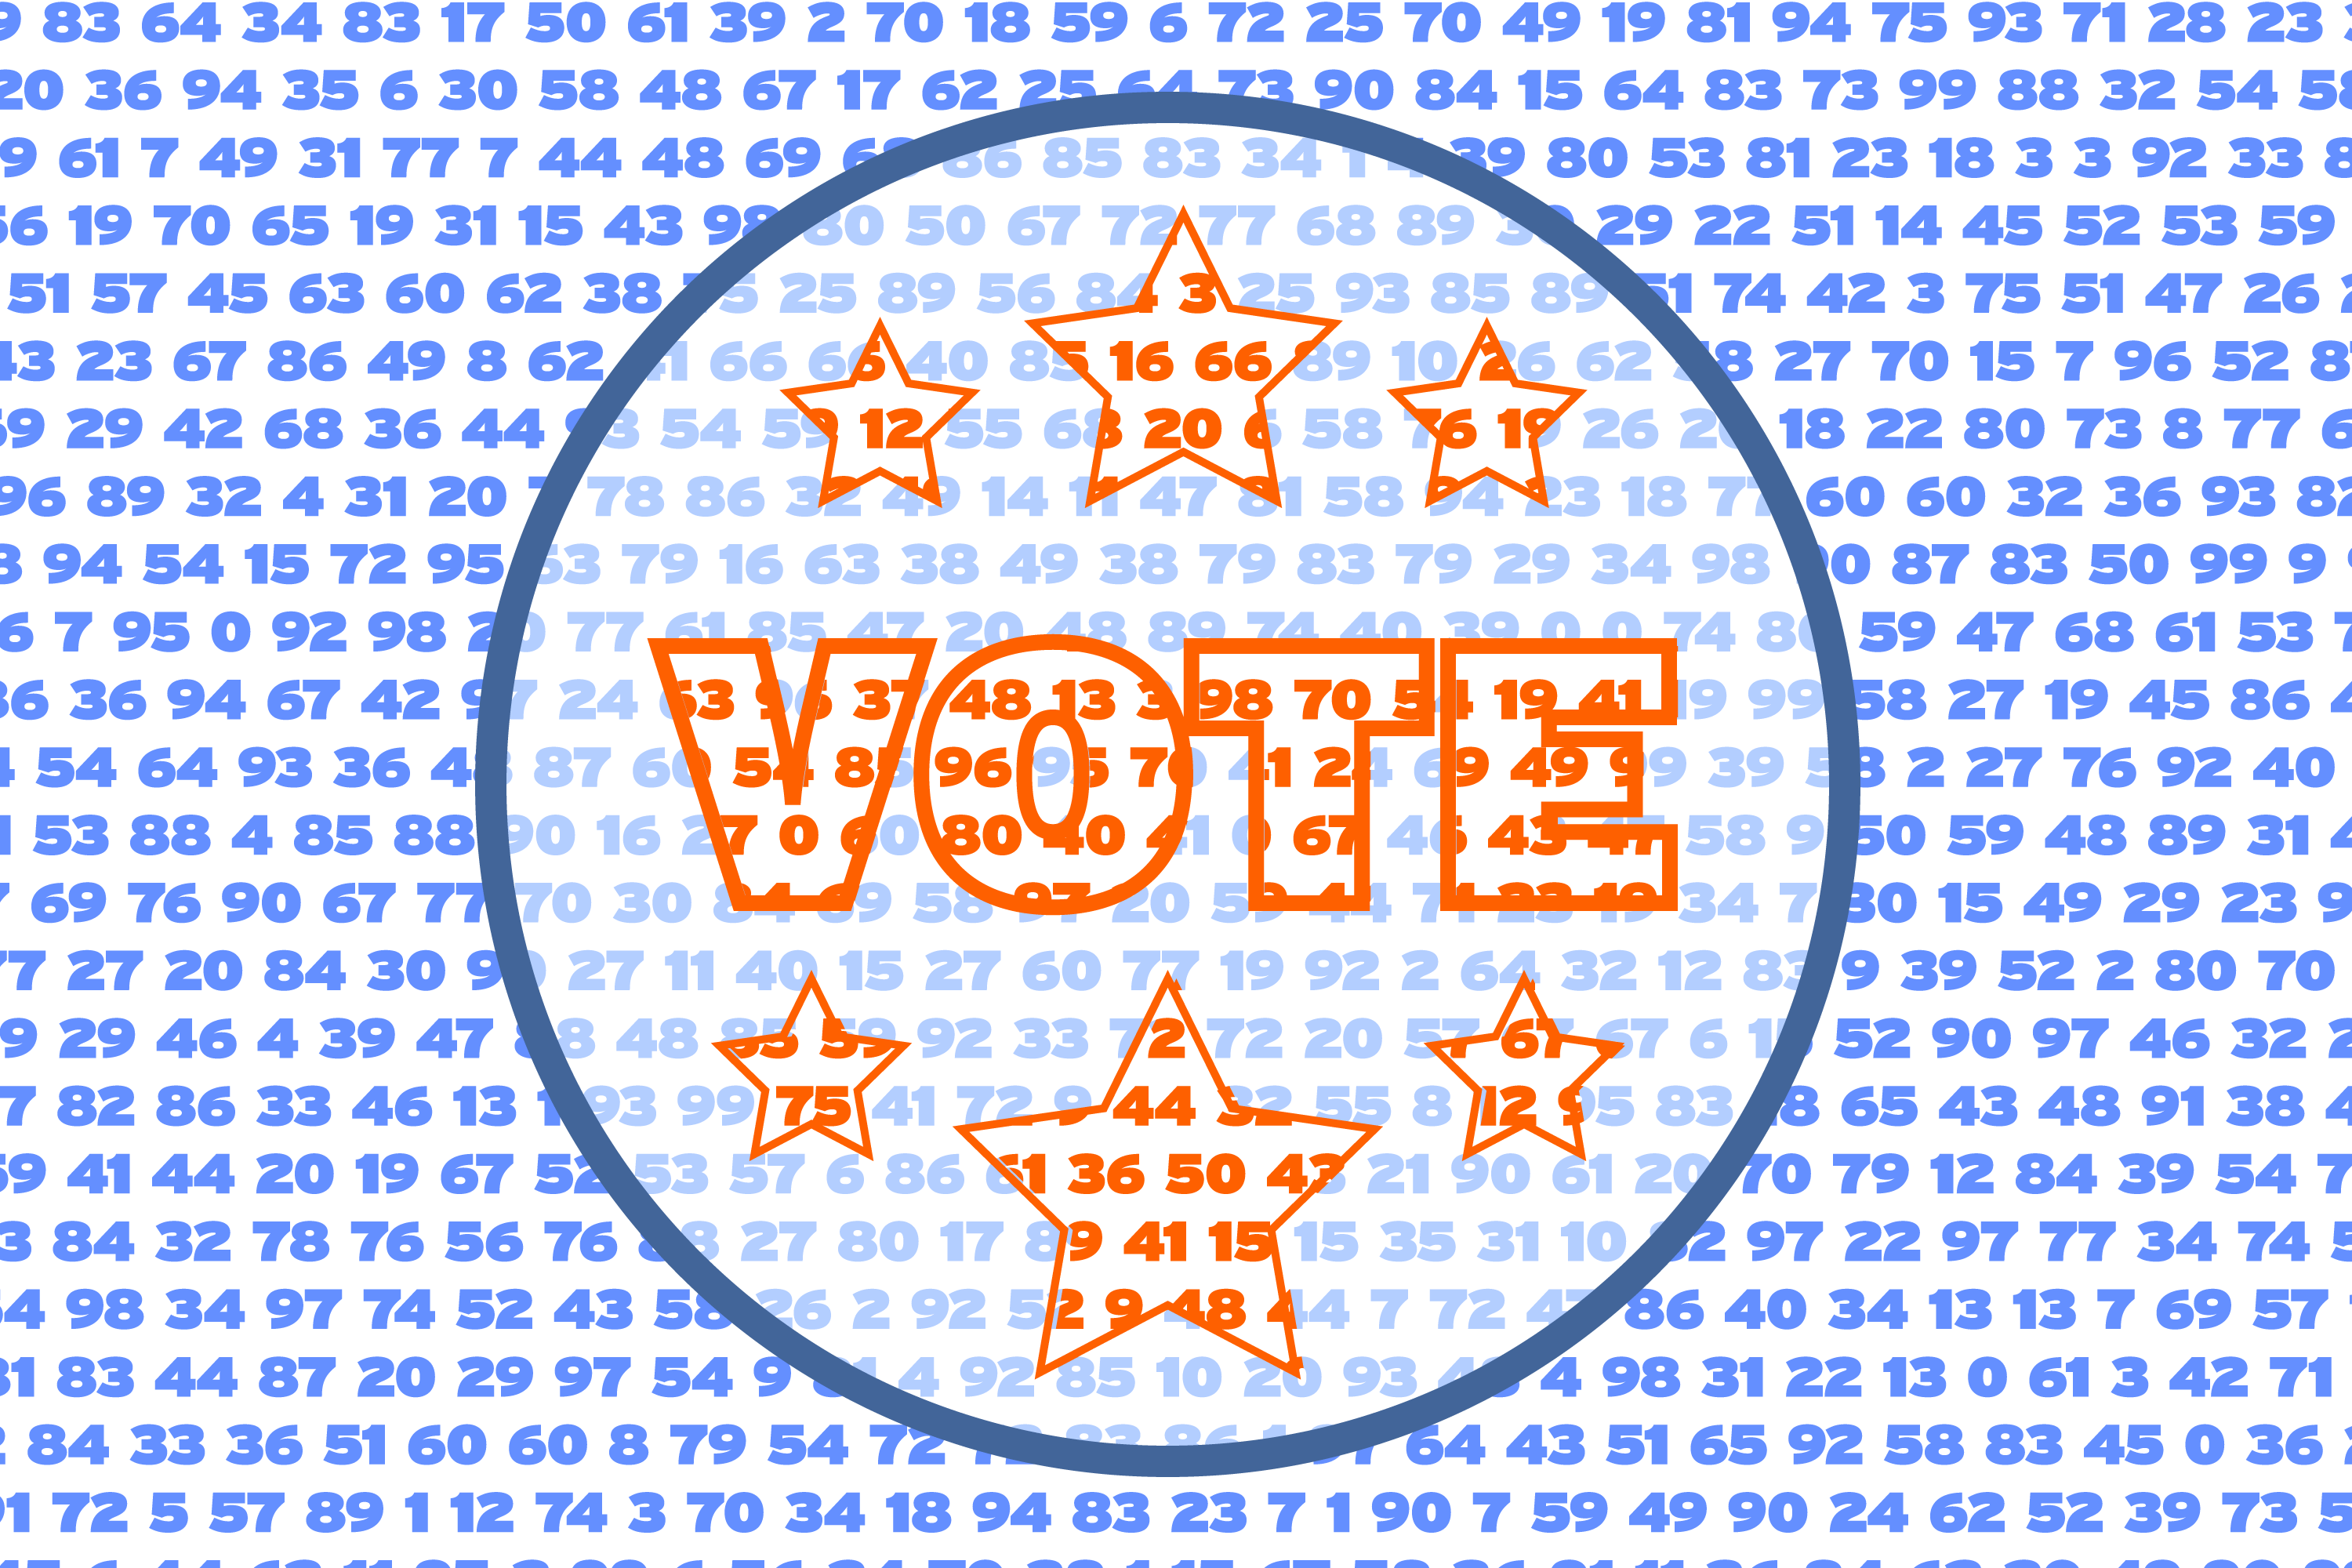 Random numbers cover a circle with the word VOTE in the center